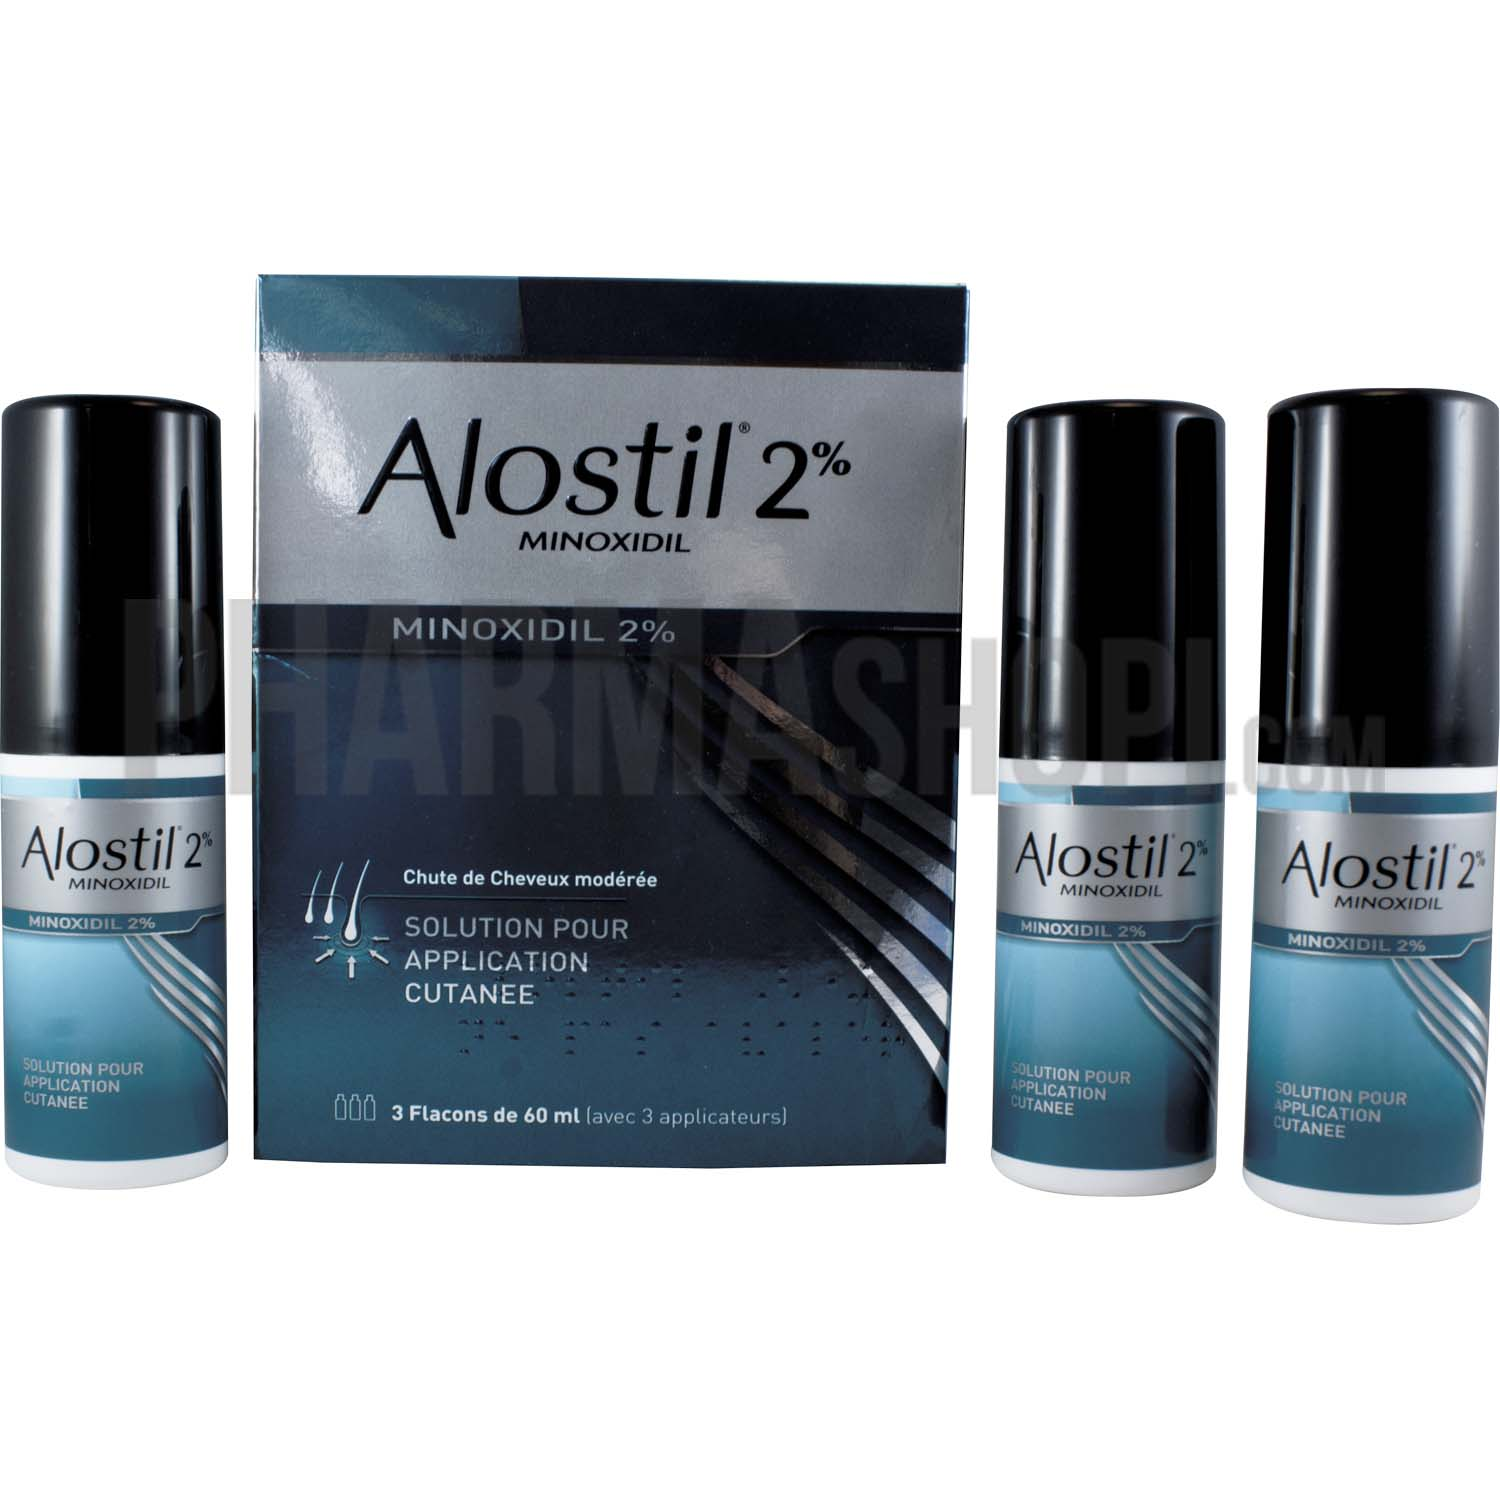 alostil 2 solution 3 flacons de 60ml contre la chute des cheveux. Black Bedroom Furniture Sets. Home Design Ideas